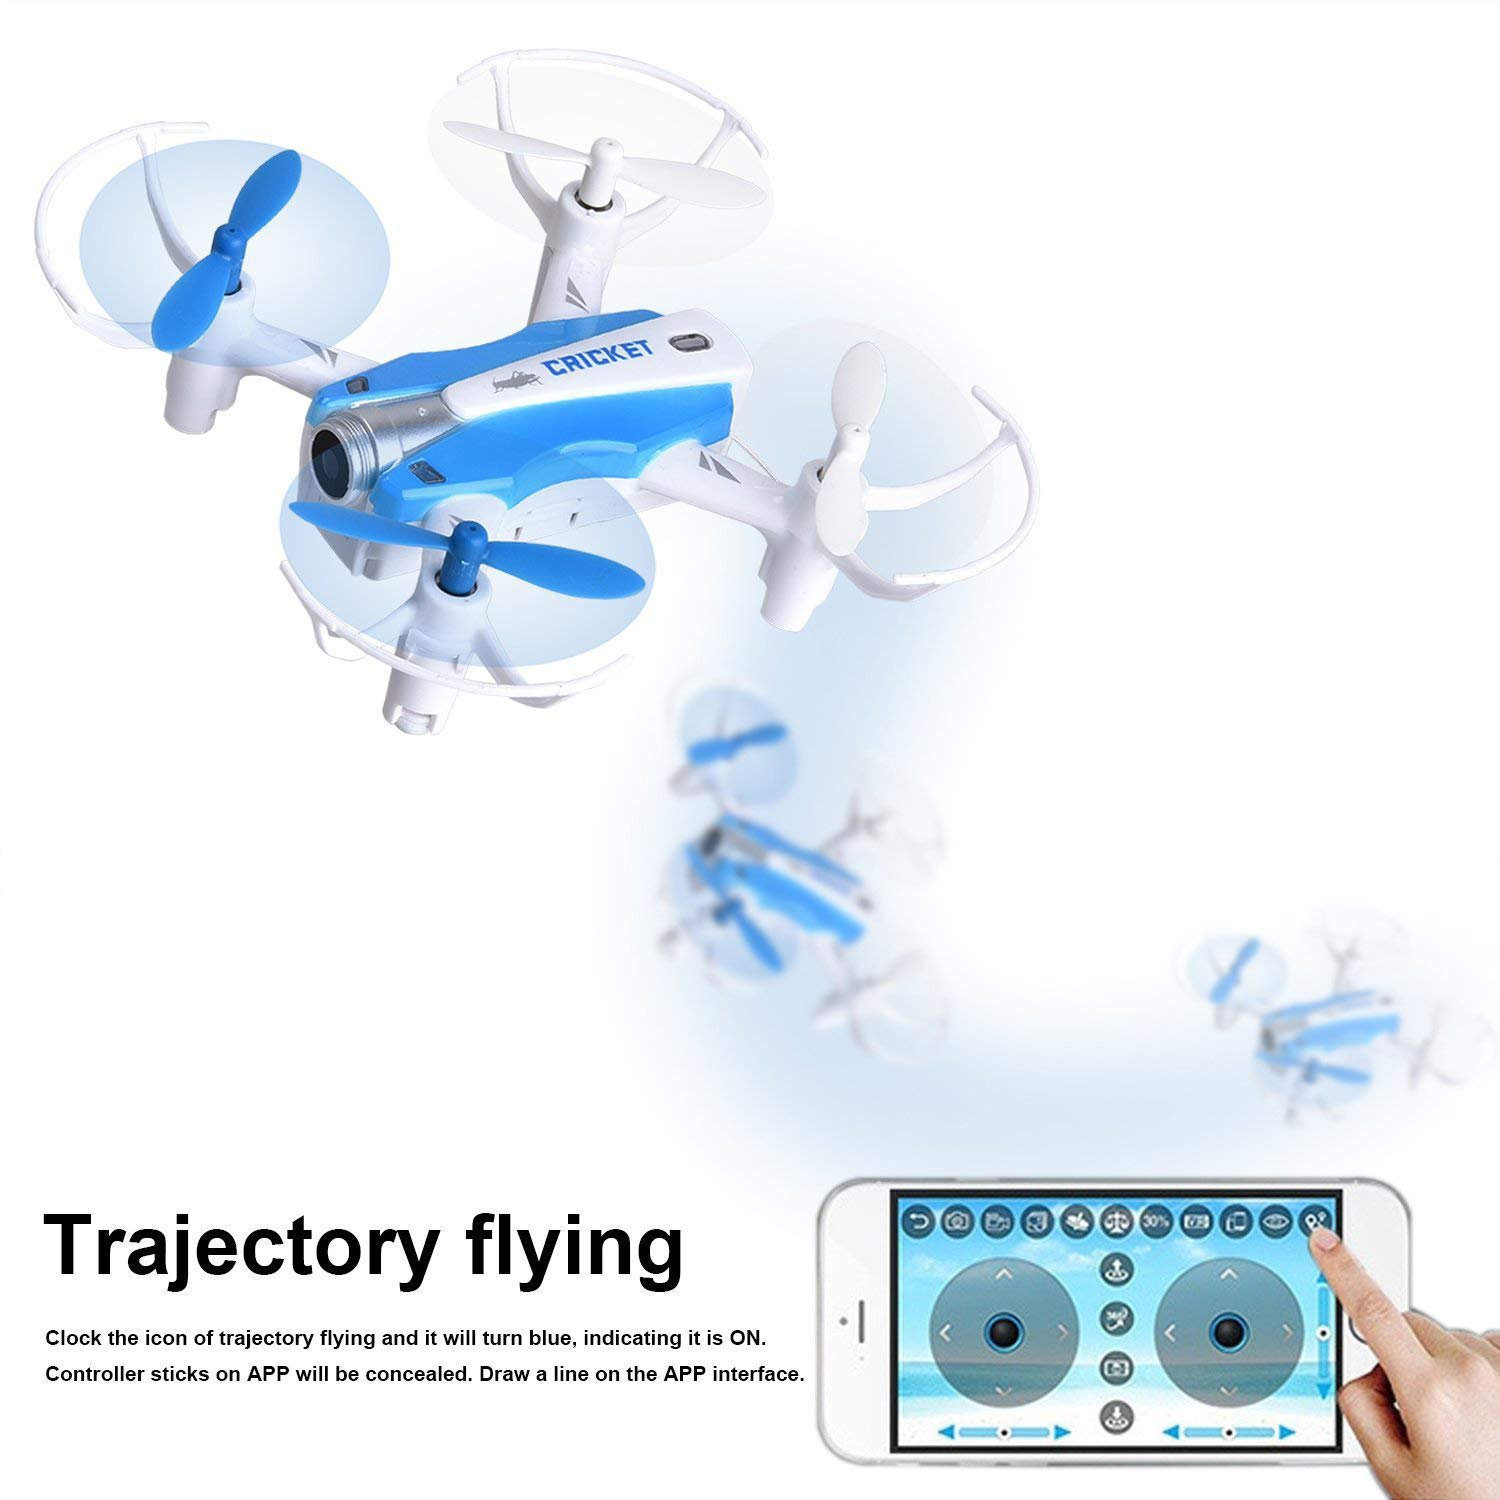 WANG XIN Christmas Air Pressure Fixed high Mini Four-axis Self-Timer Mobile Phone Remote Control Aircraft by WANG XIN (Image #5)